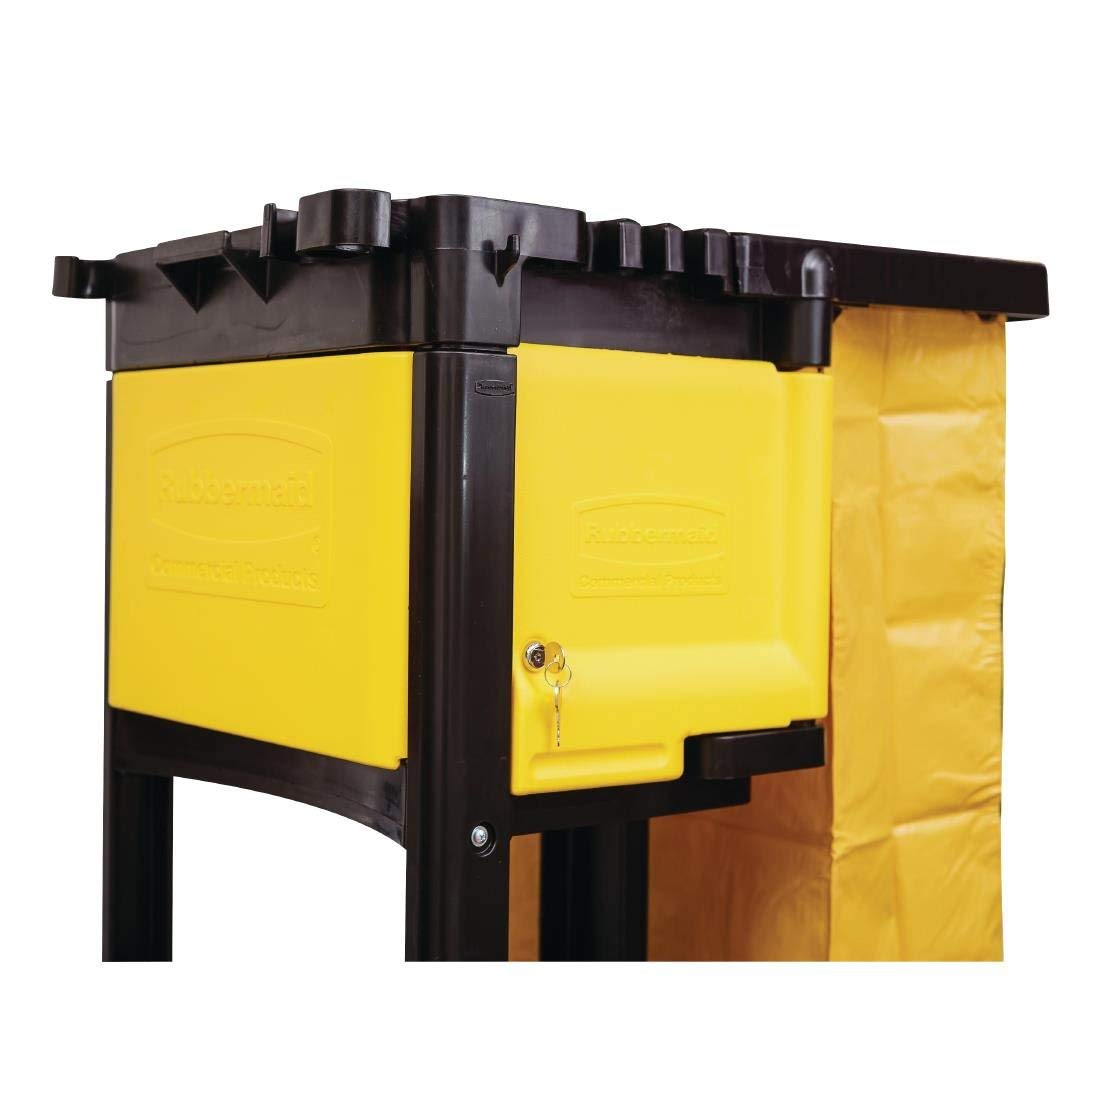 Rubbermaid M896 Locking Cabinet for Valuables